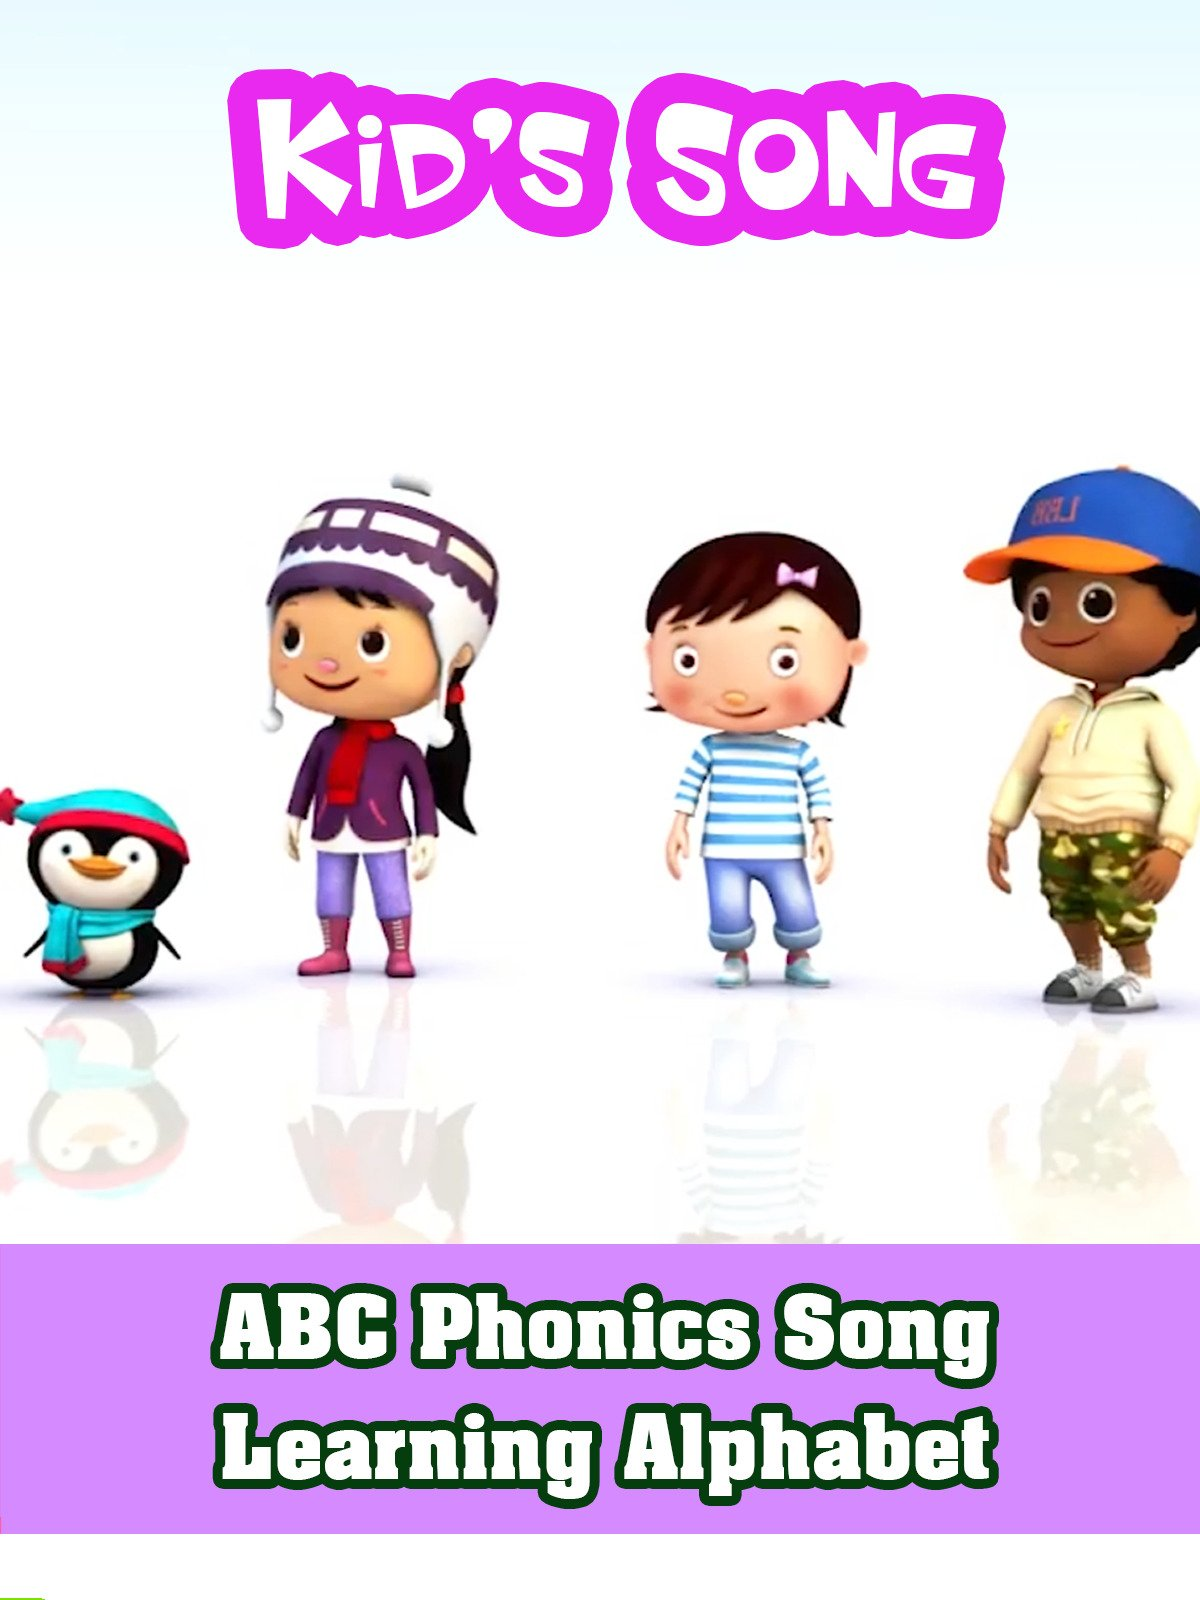 ABC Phonics Song Learning Alphabet